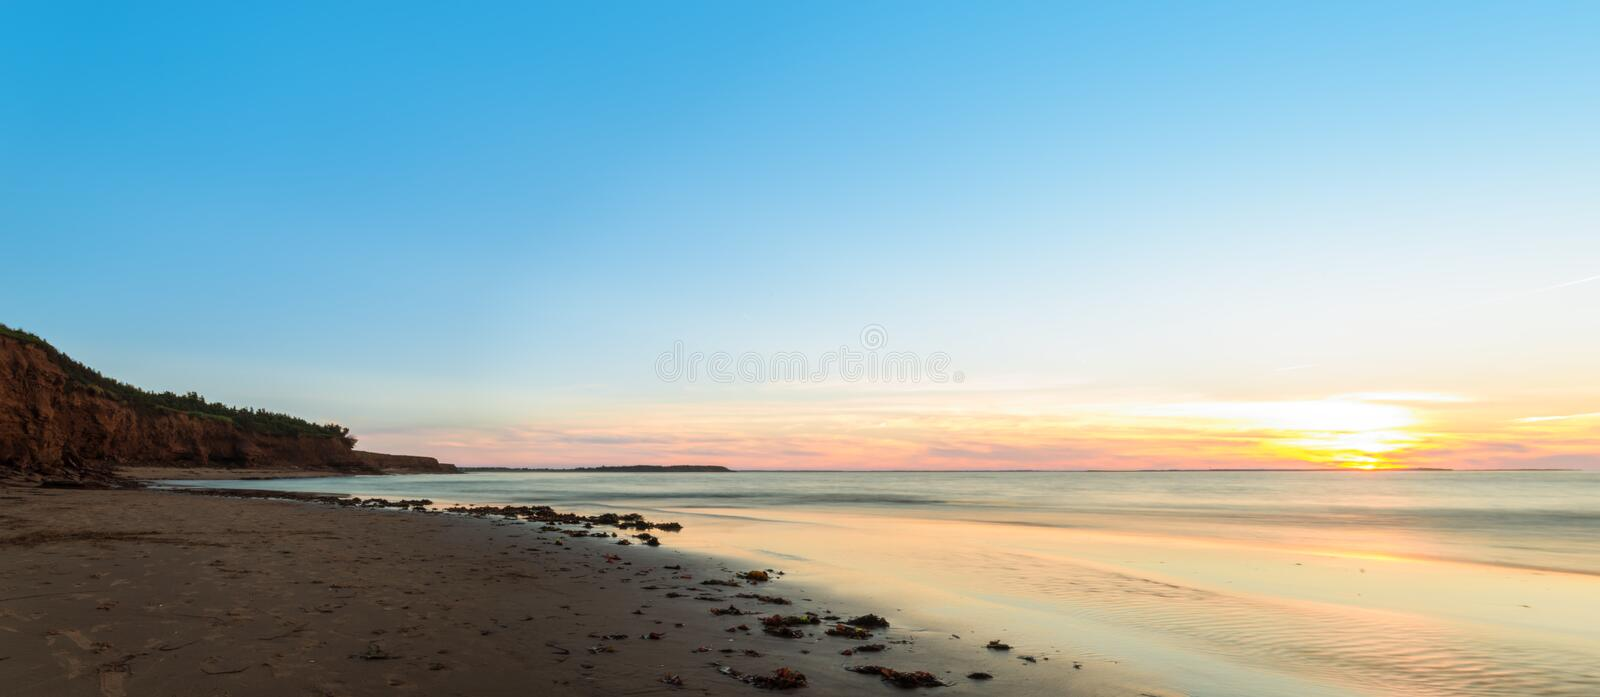 Panorama of ocean beach at sunset royalty free stock photo